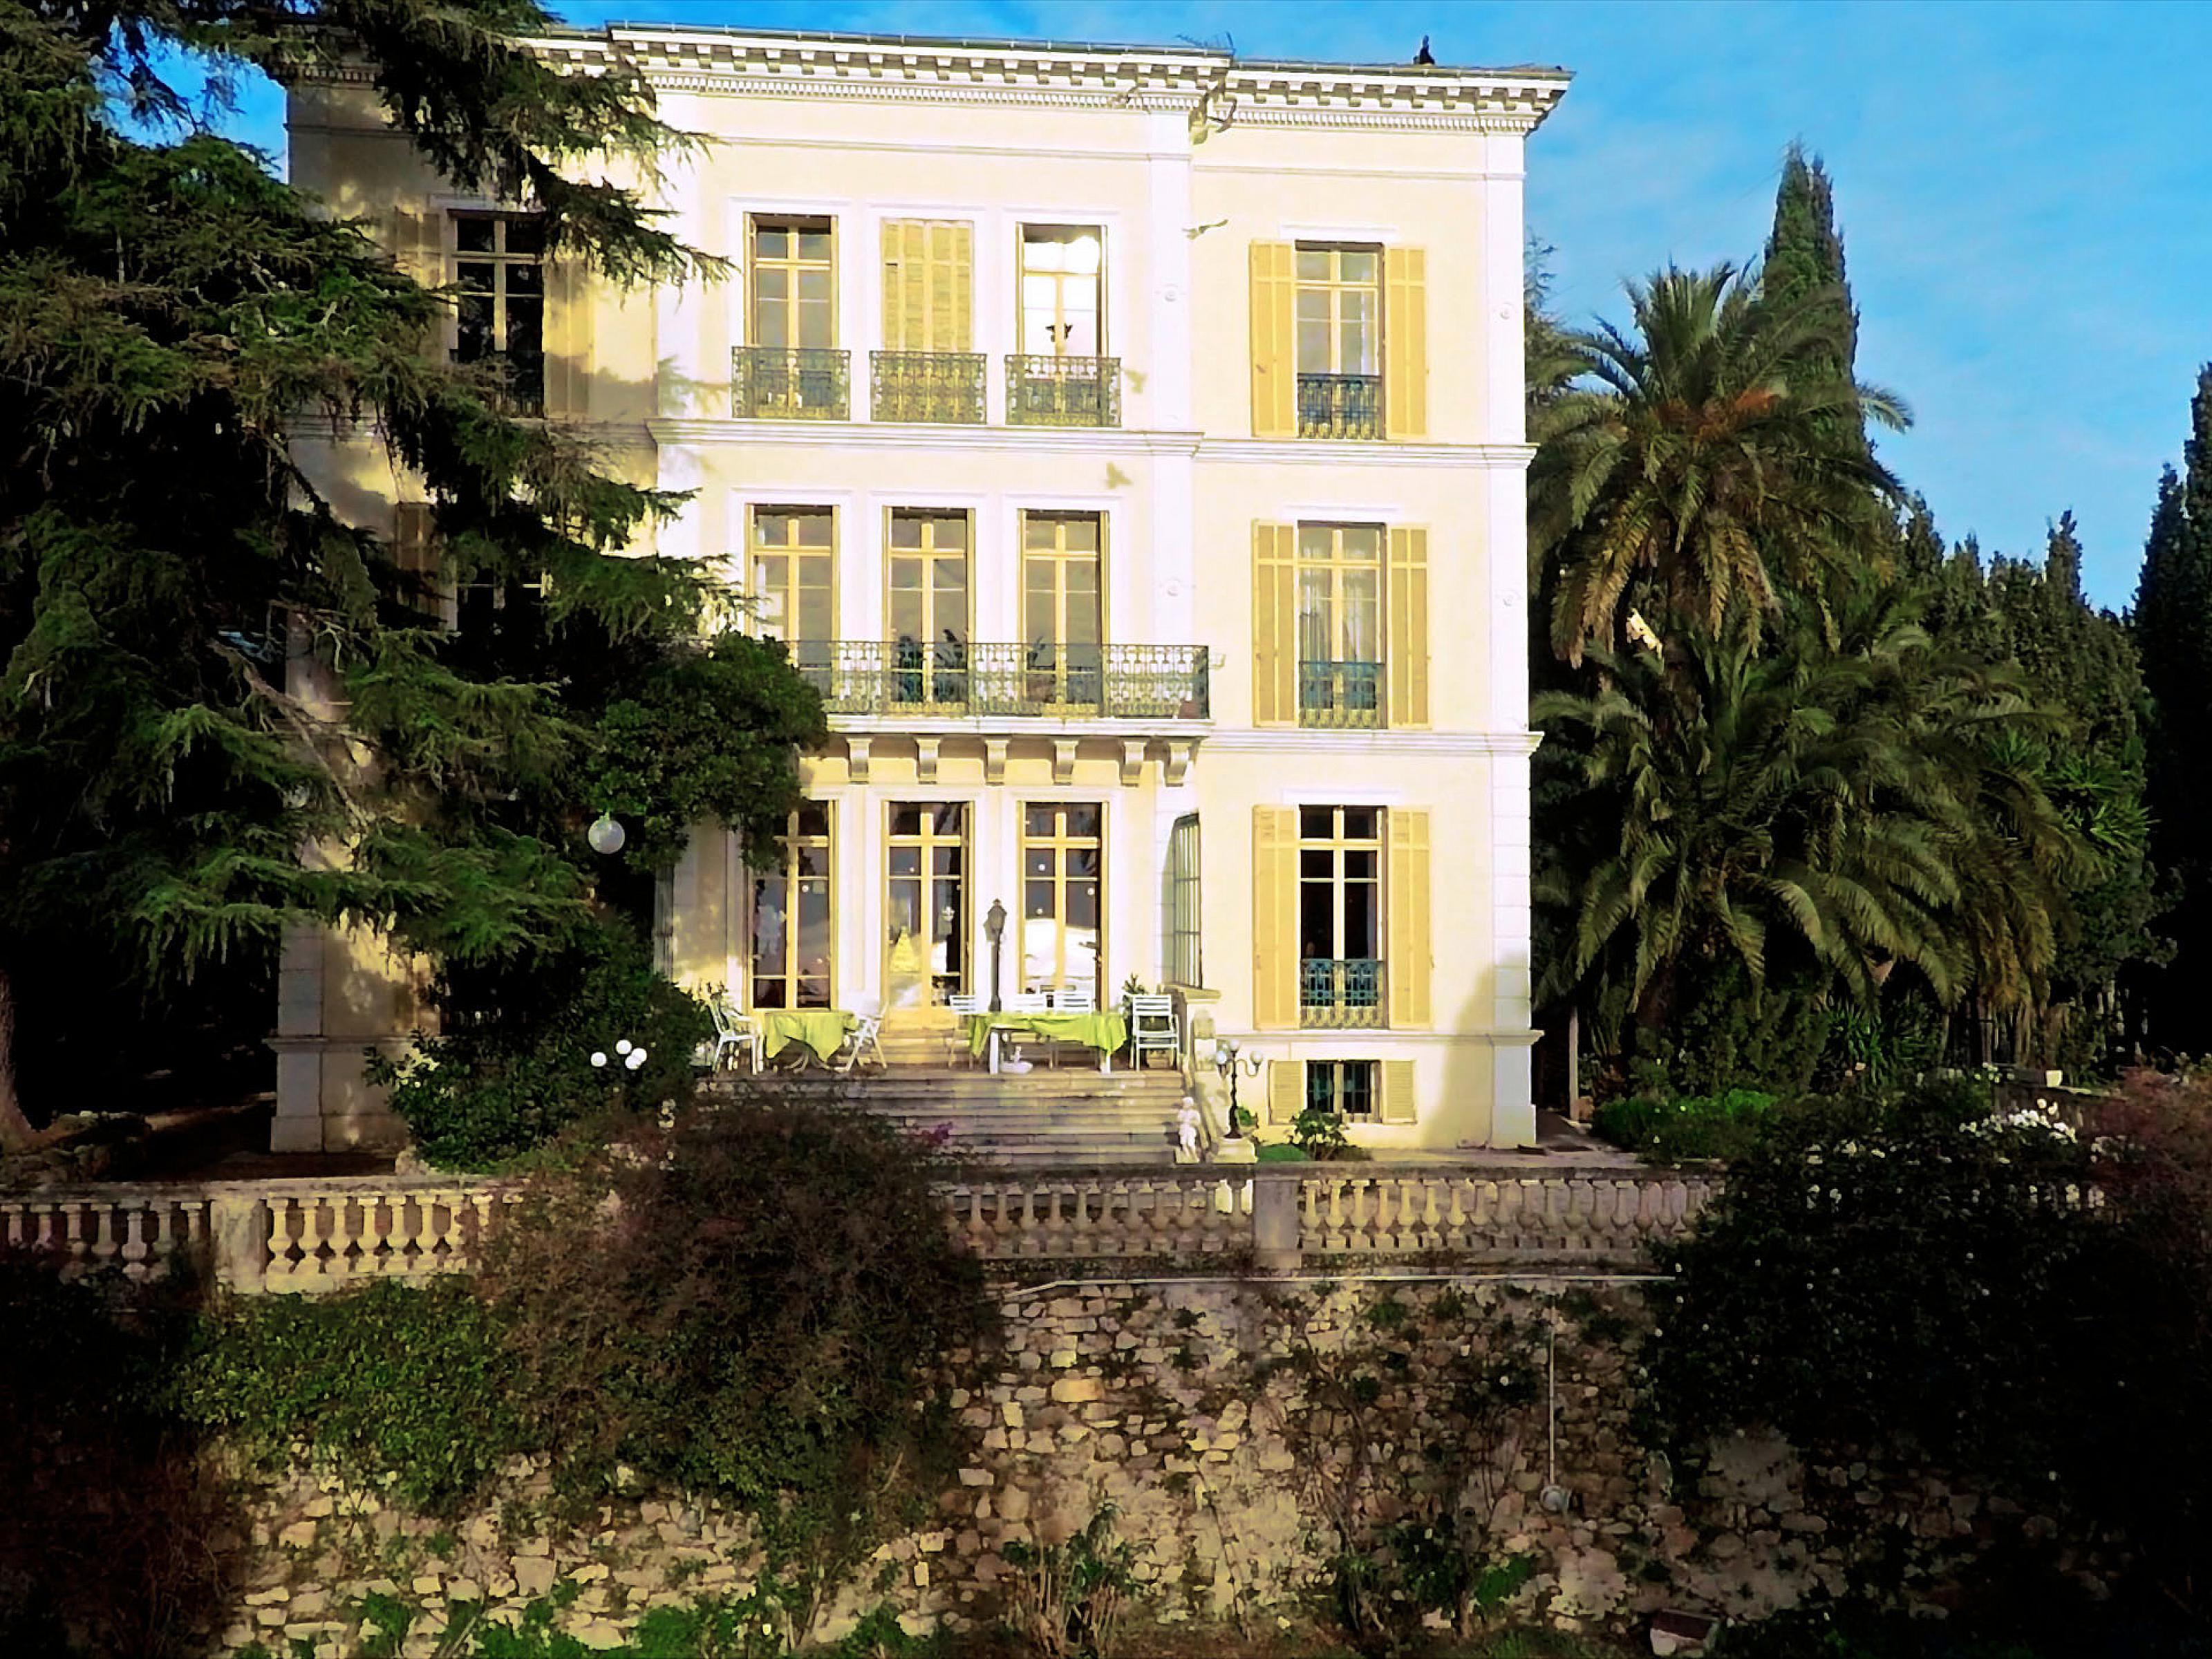 Single Family Home for Sale at Villa Héloise Cannes, Provence-Alpes-Cote D'Azur 06400 France